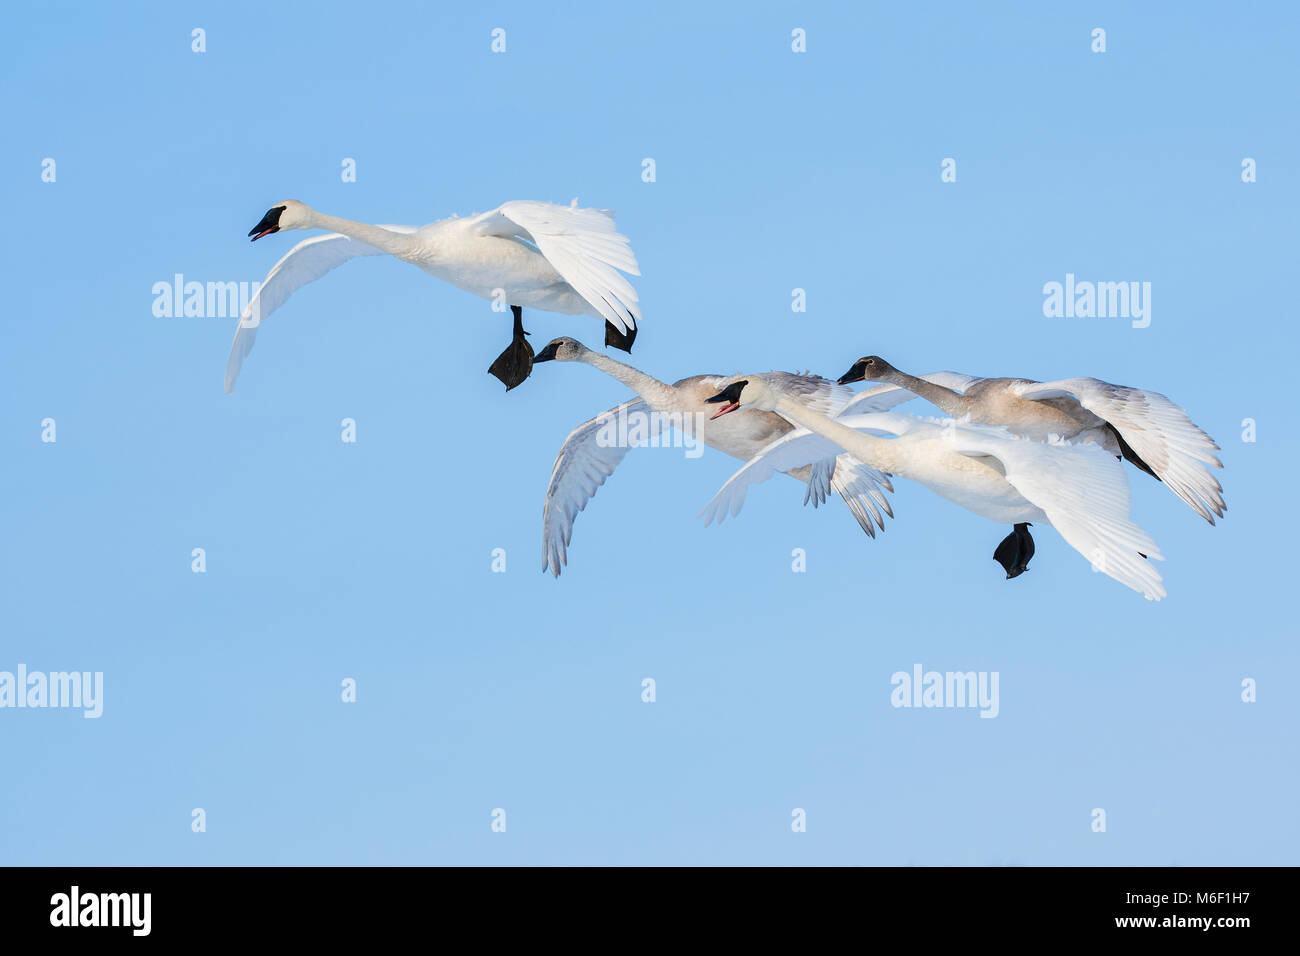 Trumpeter swan family unit (Cygnus buccinator),  St. Croix River between Minnesota and Wisconsin. WI USA, by Dominique - Stock Image